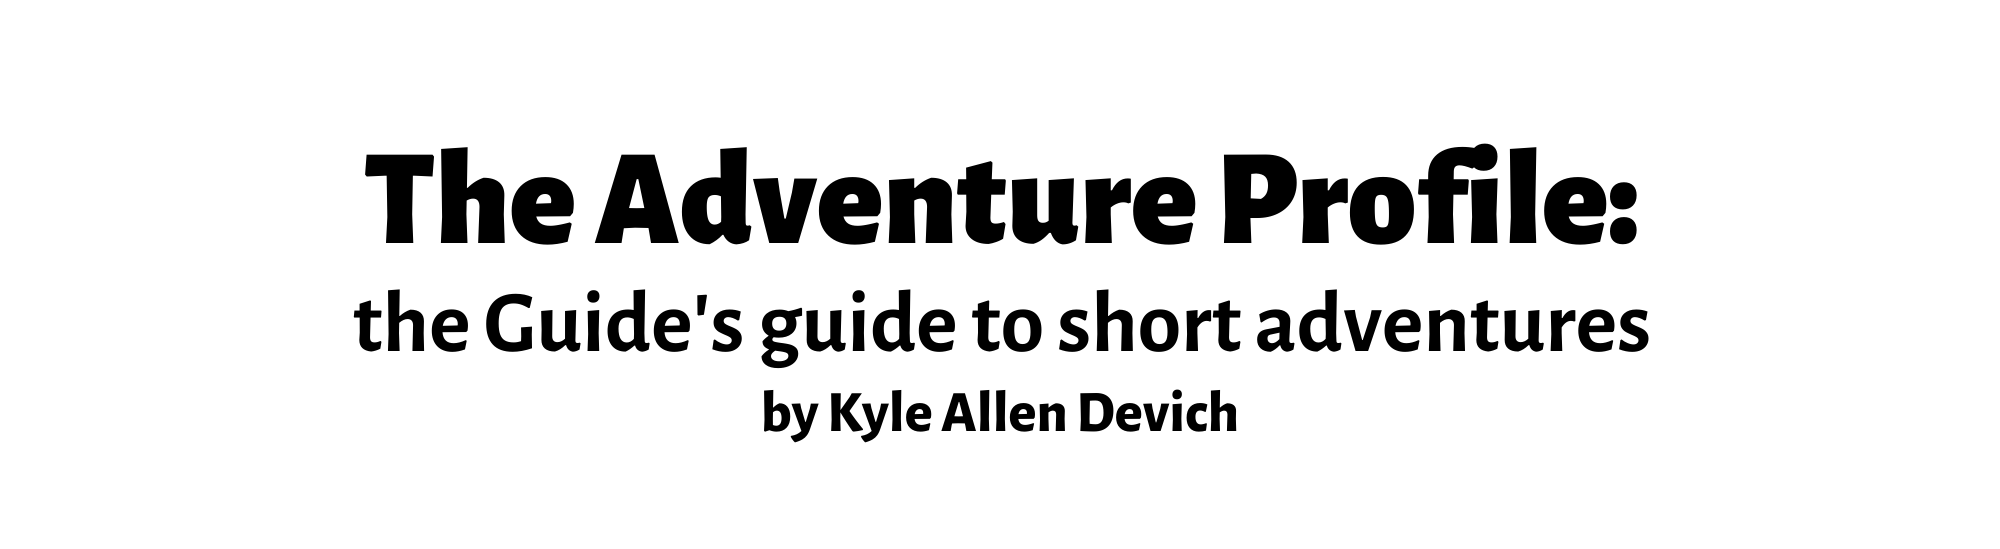 The Adventure Profile